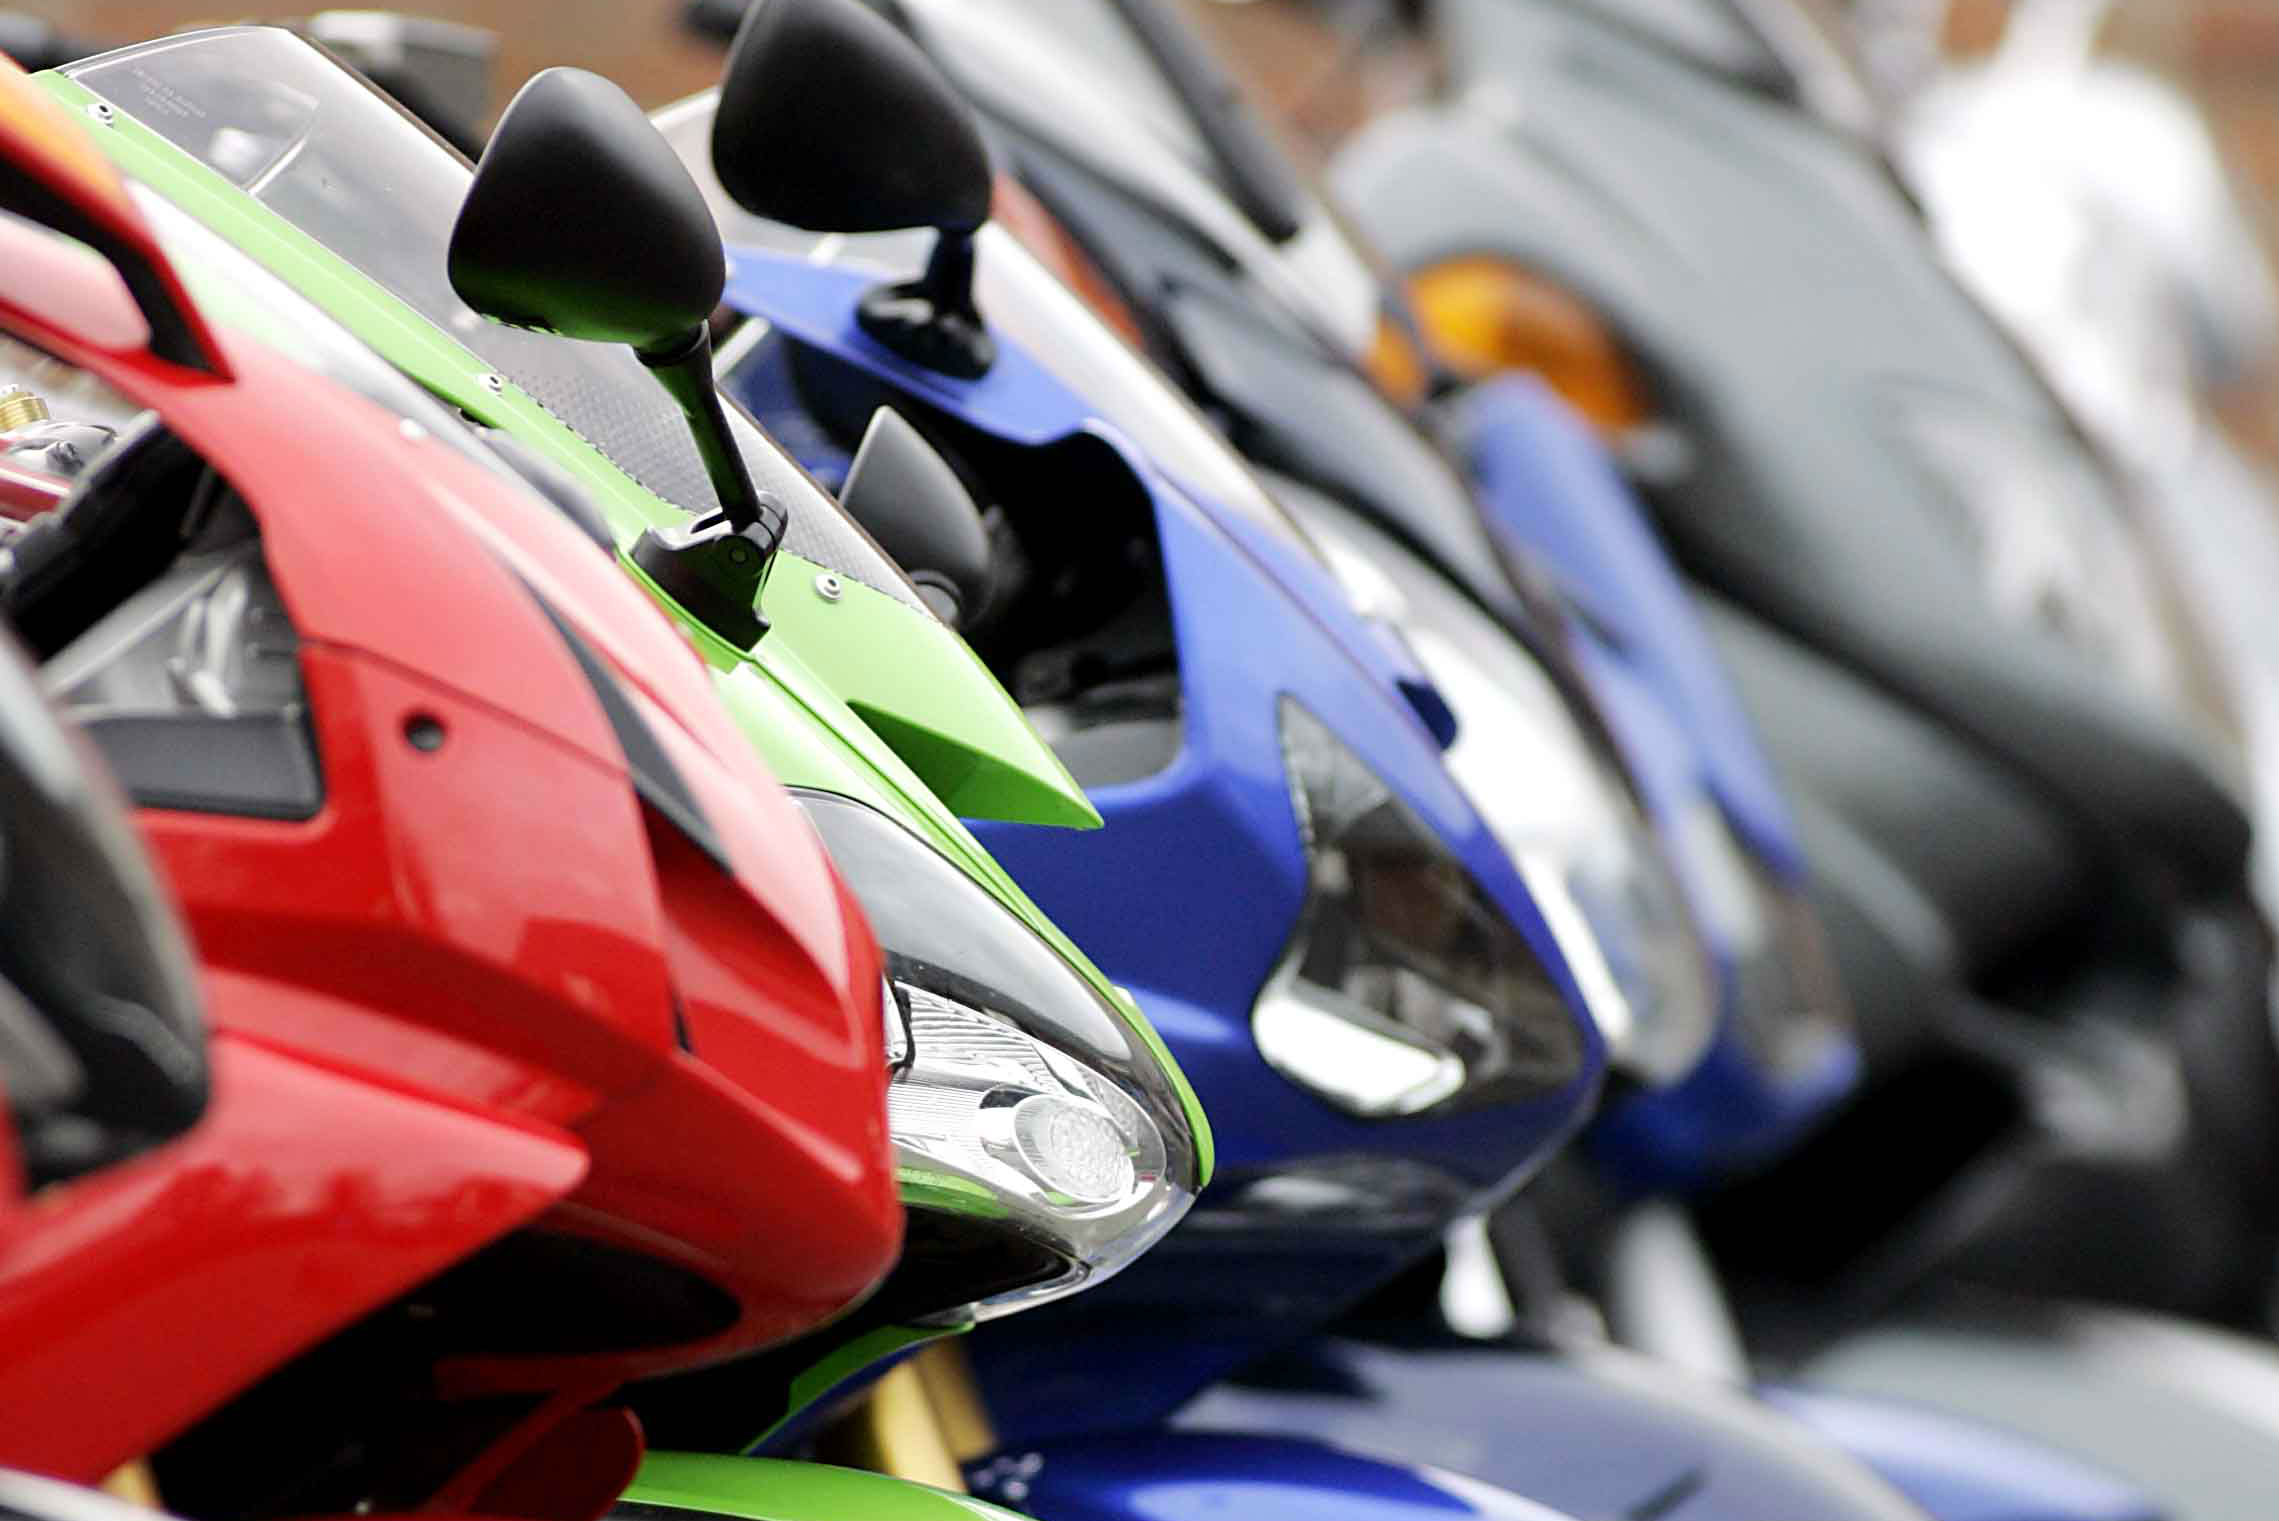 Bike sales are booming